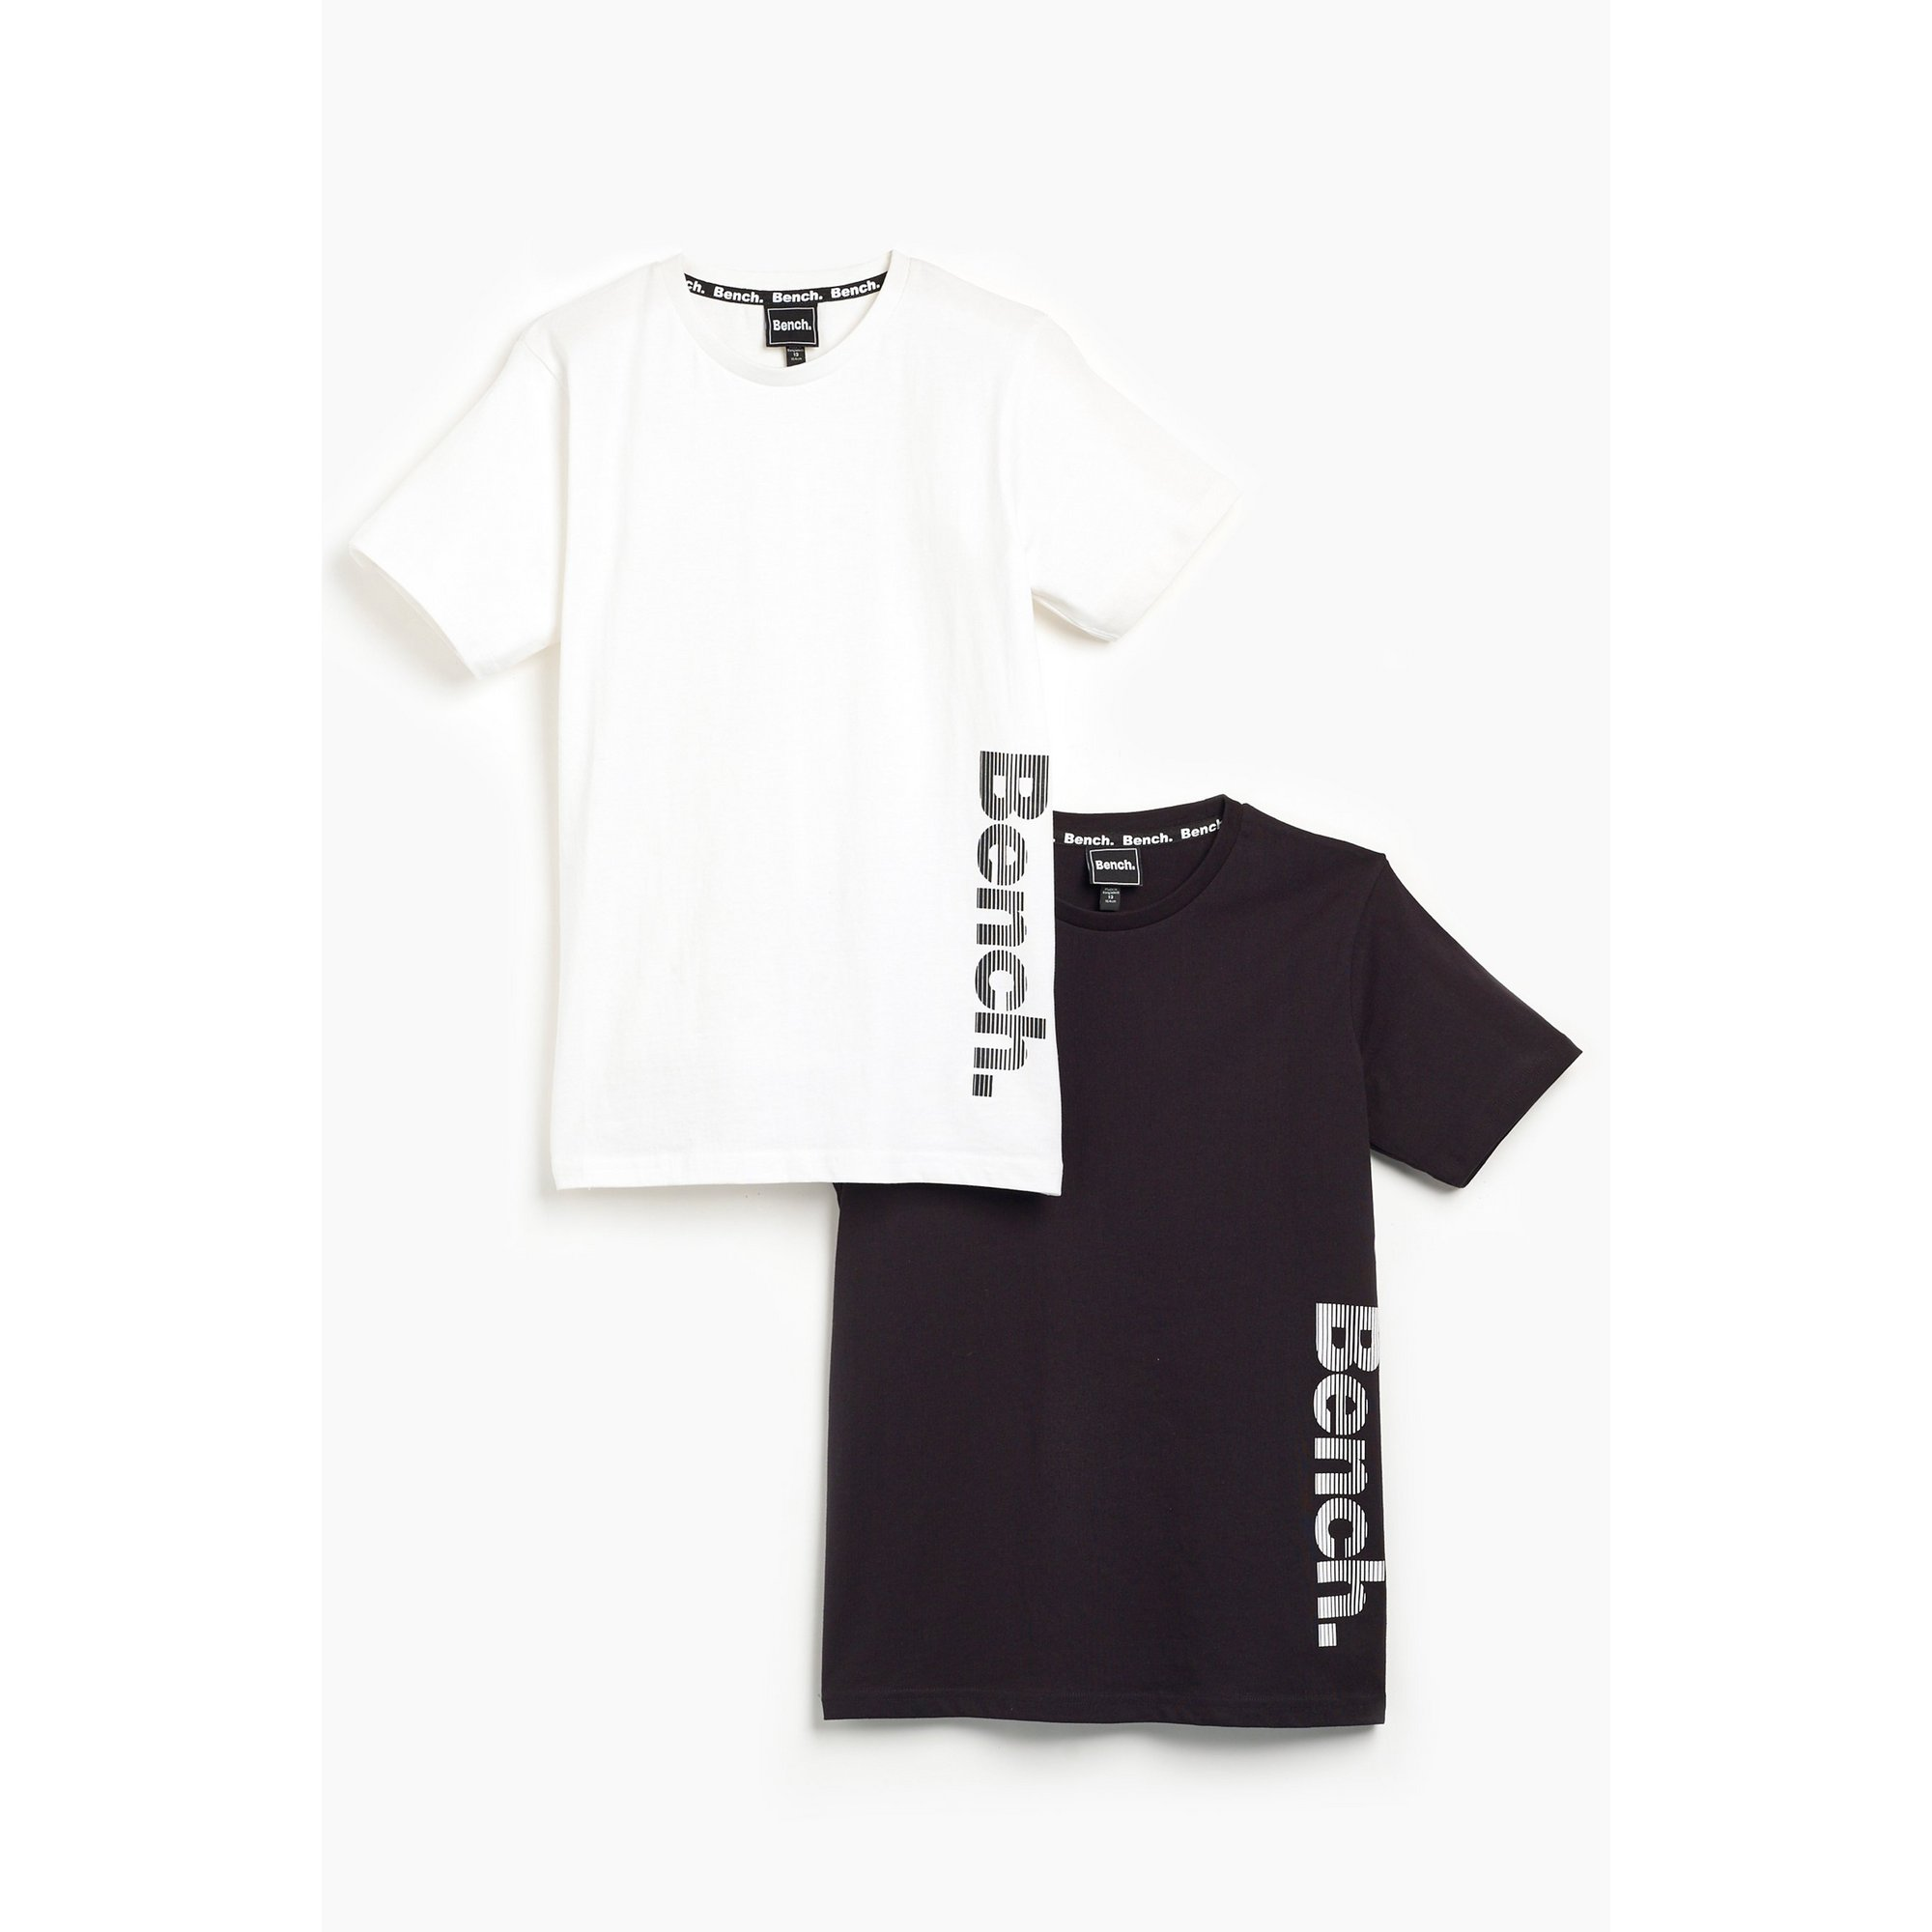 Image of Boys Bench Pack of 2 Black/White T-Shirts